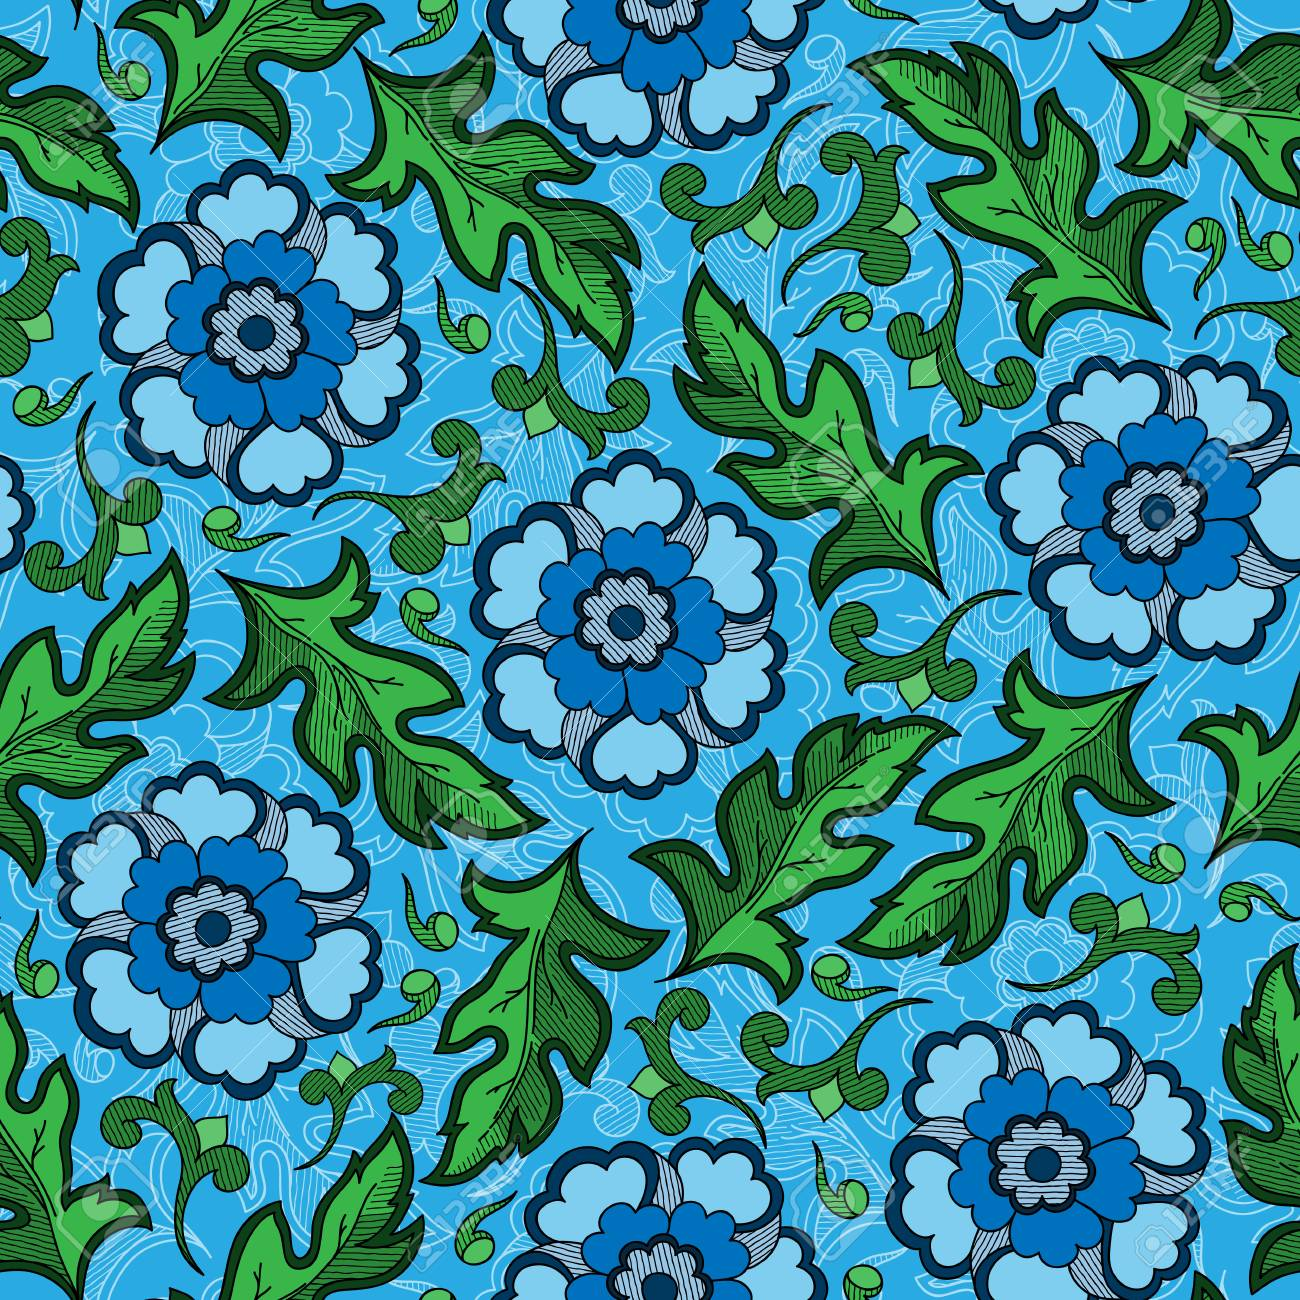 Wallpaper Seamless Vintage Flower Pattern Royalty Free Cliparts Vectors And Stock Illustration Image